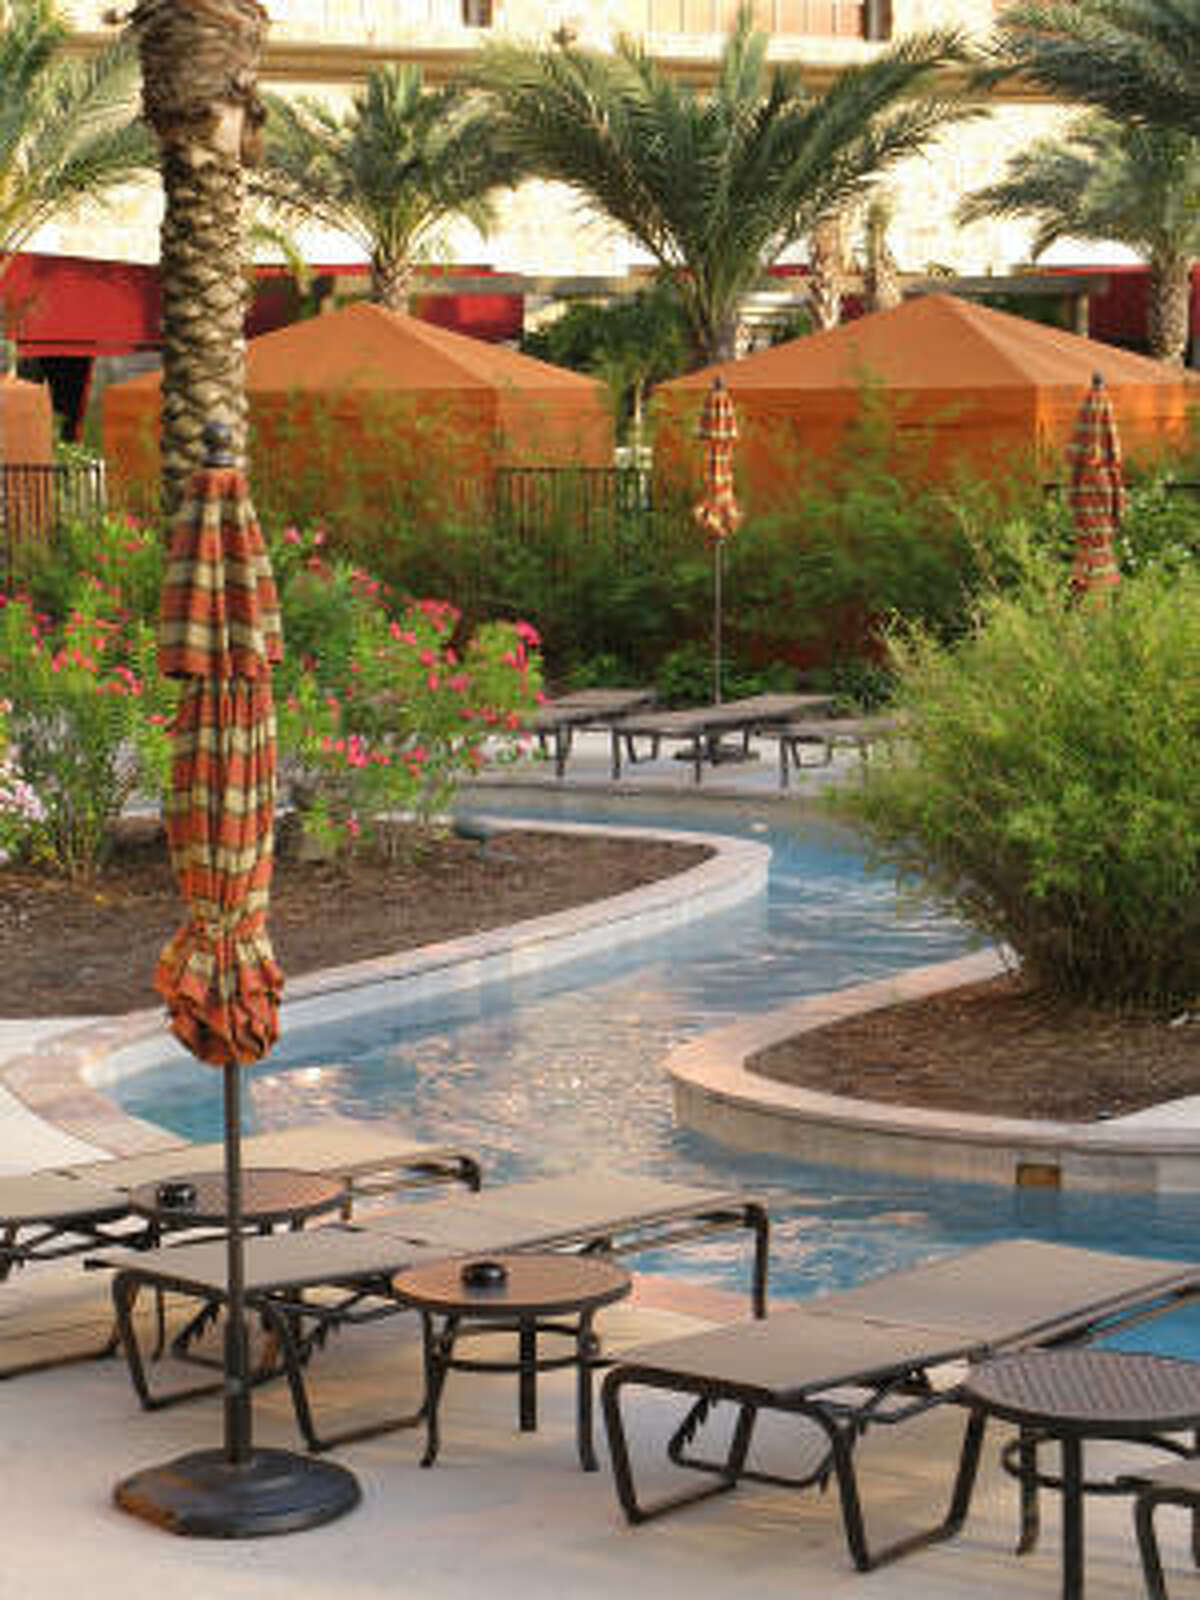 L'Auberge du Lac Casino Resort offers a lazy river.